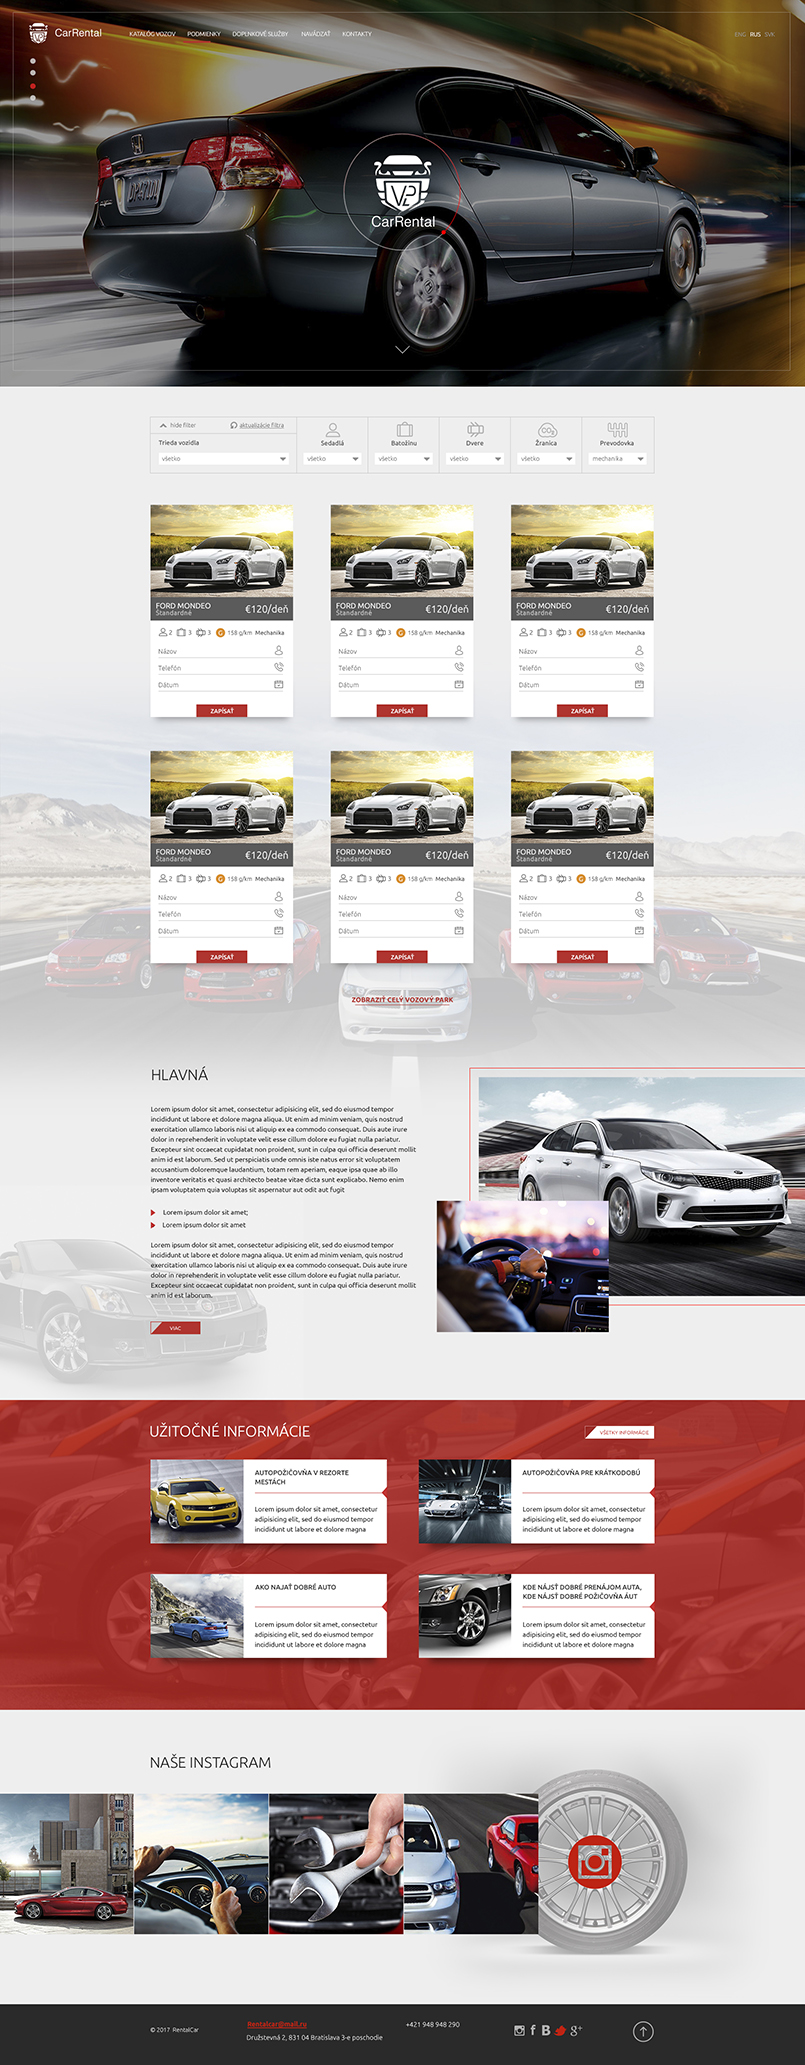 We show the finished main page, the website supports a video background in the header of the website and also the filter of the car selection is visible, the client remains satisfied